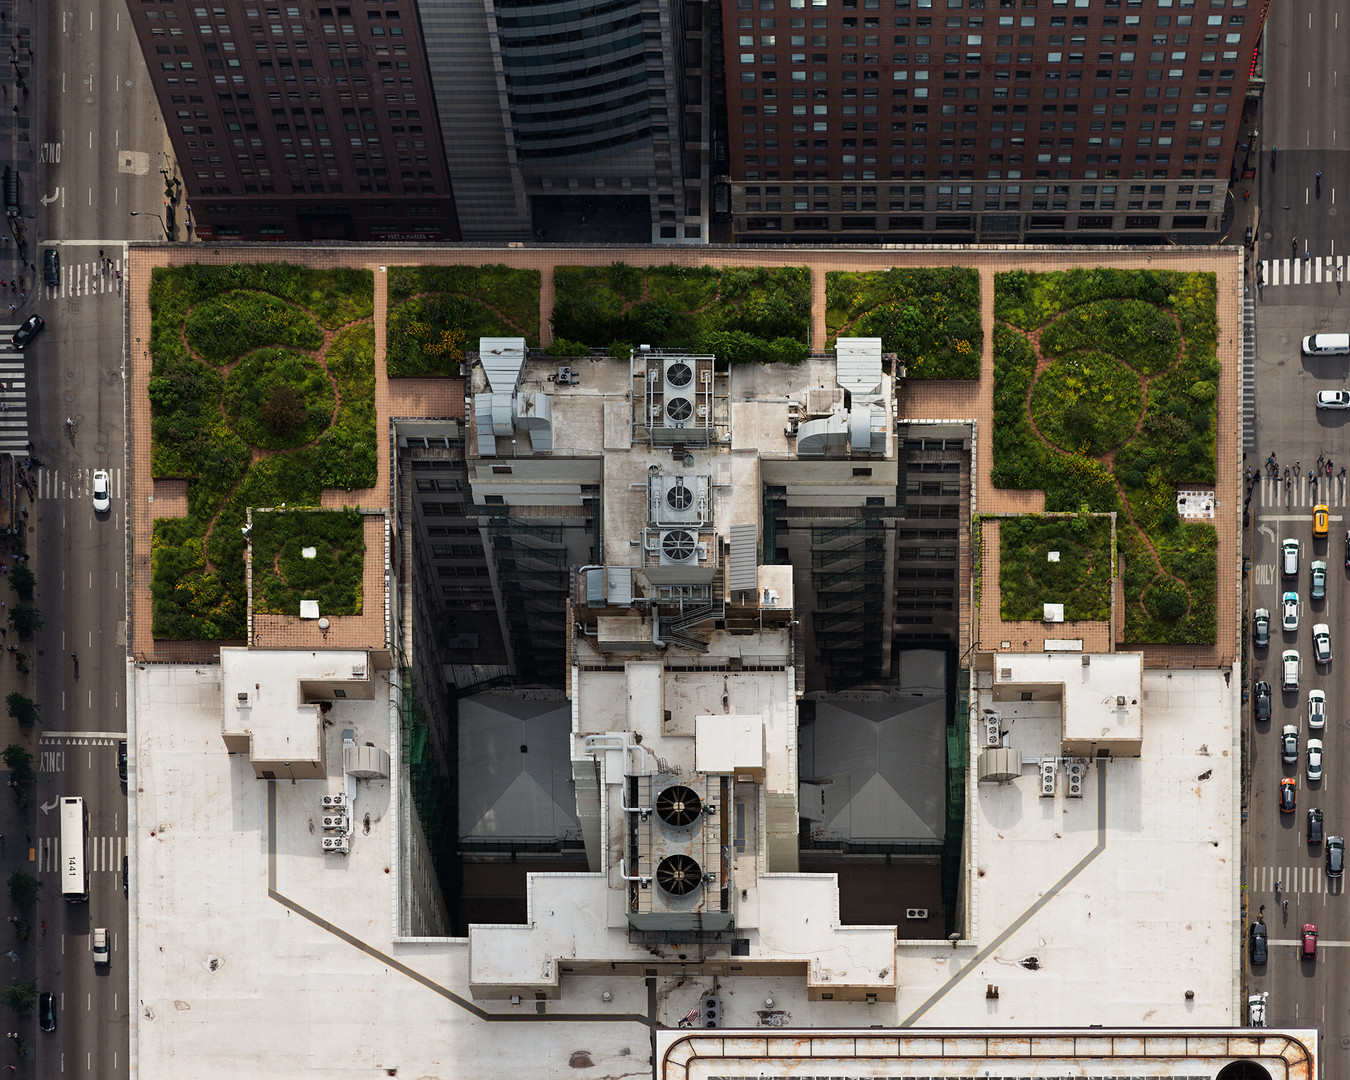 City Hall (from above, looking West) - C